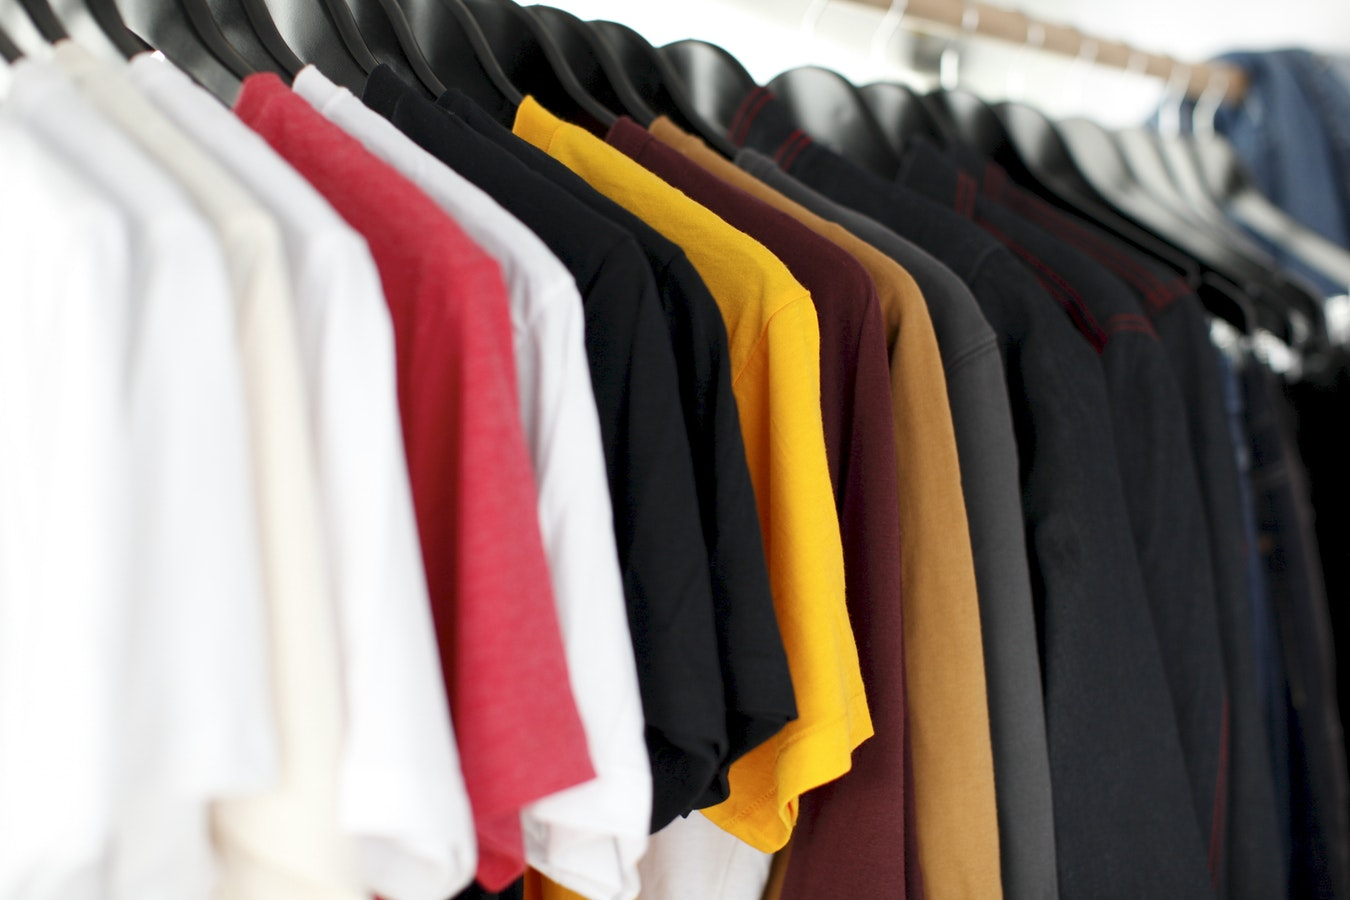 Clothing of various colours hangs on a rack.